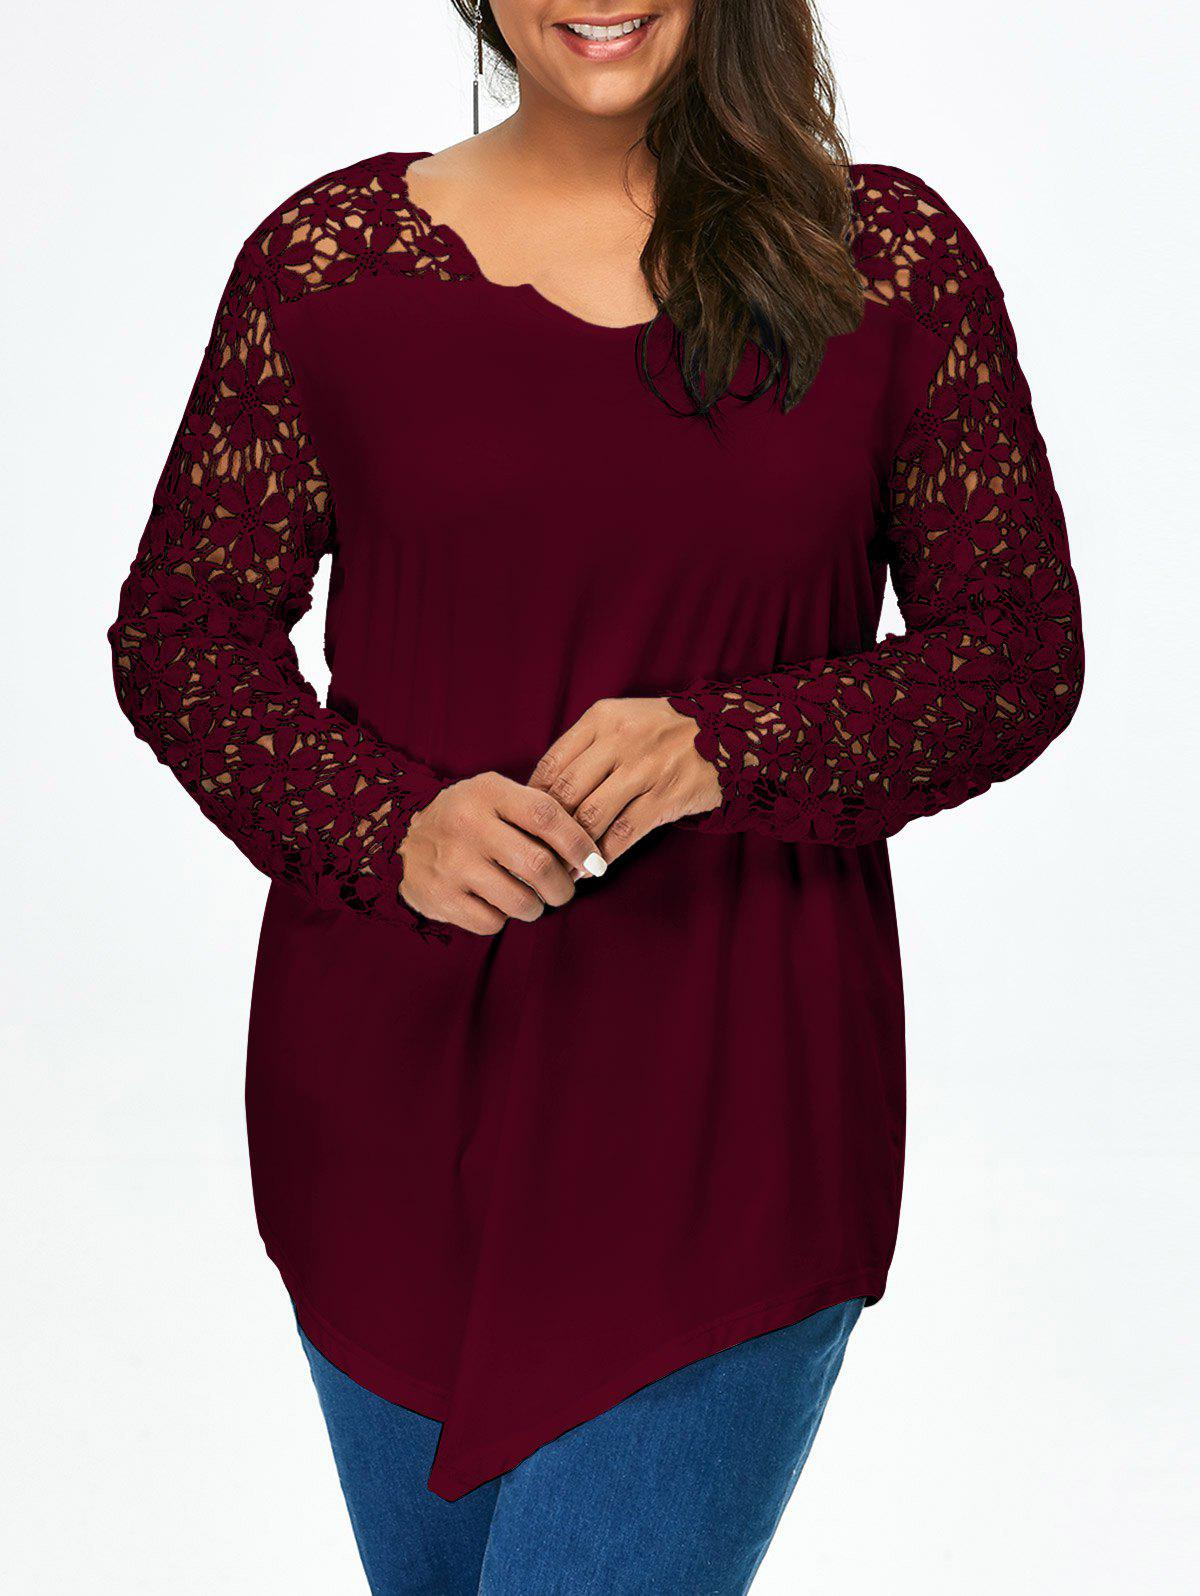 Lace Panel Plus Size Long Sleeve Tunic T ShirtWOMEN<br><br>Size: 2XL; Color: WINE RED; Material: Cotton Blends,Polyester,Spandex; Shirt Length: Long; Sleeve Length: Full; Collar: V-Neck; Style: Fashion; Season: Fall,Spring; Embellishment: Lace; Pattern Type: Others; Weight: 0.320kg; Package Contents: 1 x T-Shirt;